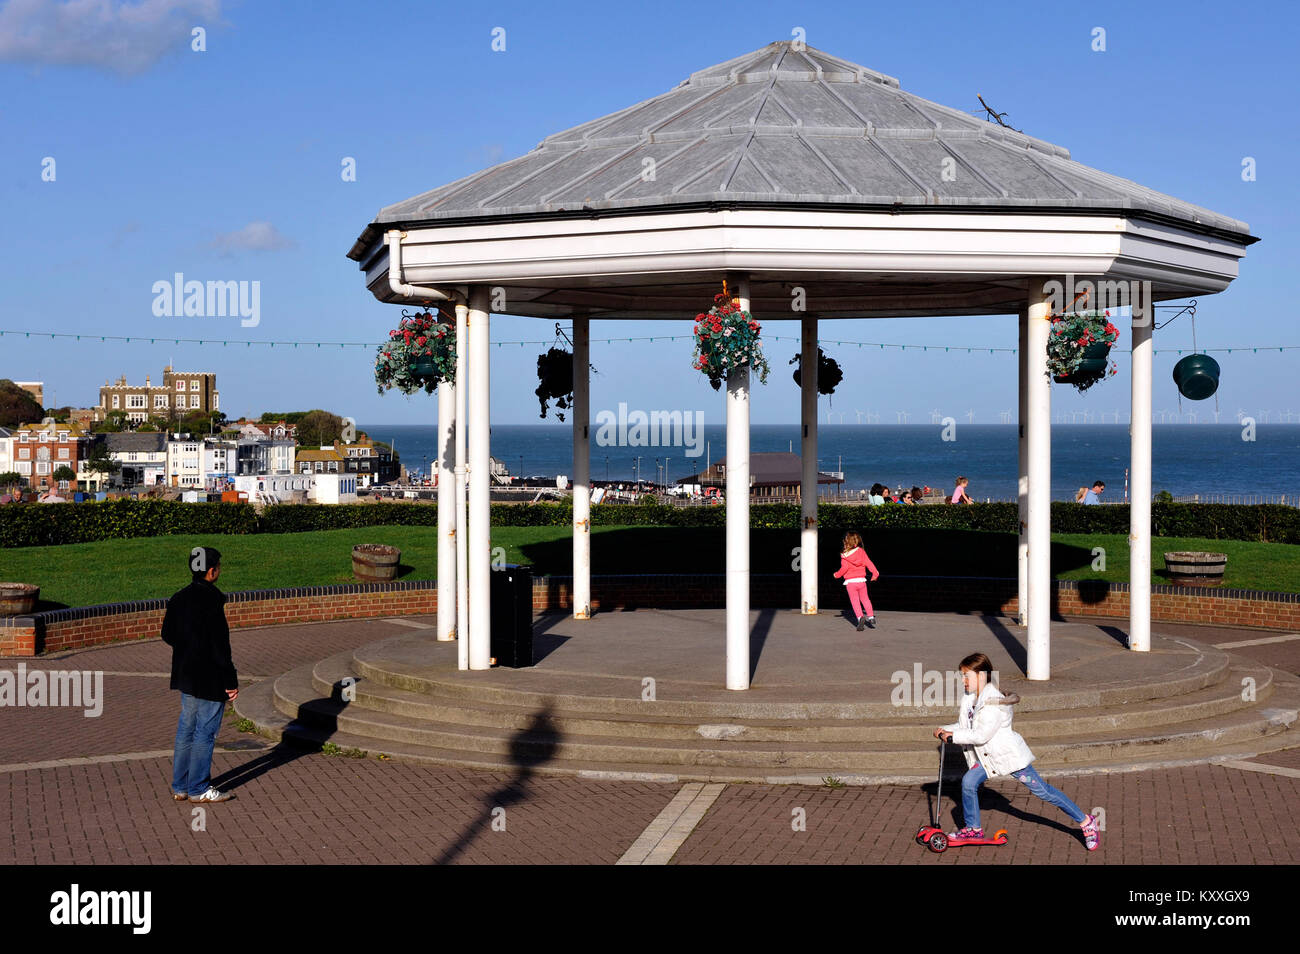 Children playing on the Bandstand, Broadstairs, Kent, England, UK - Stock Image